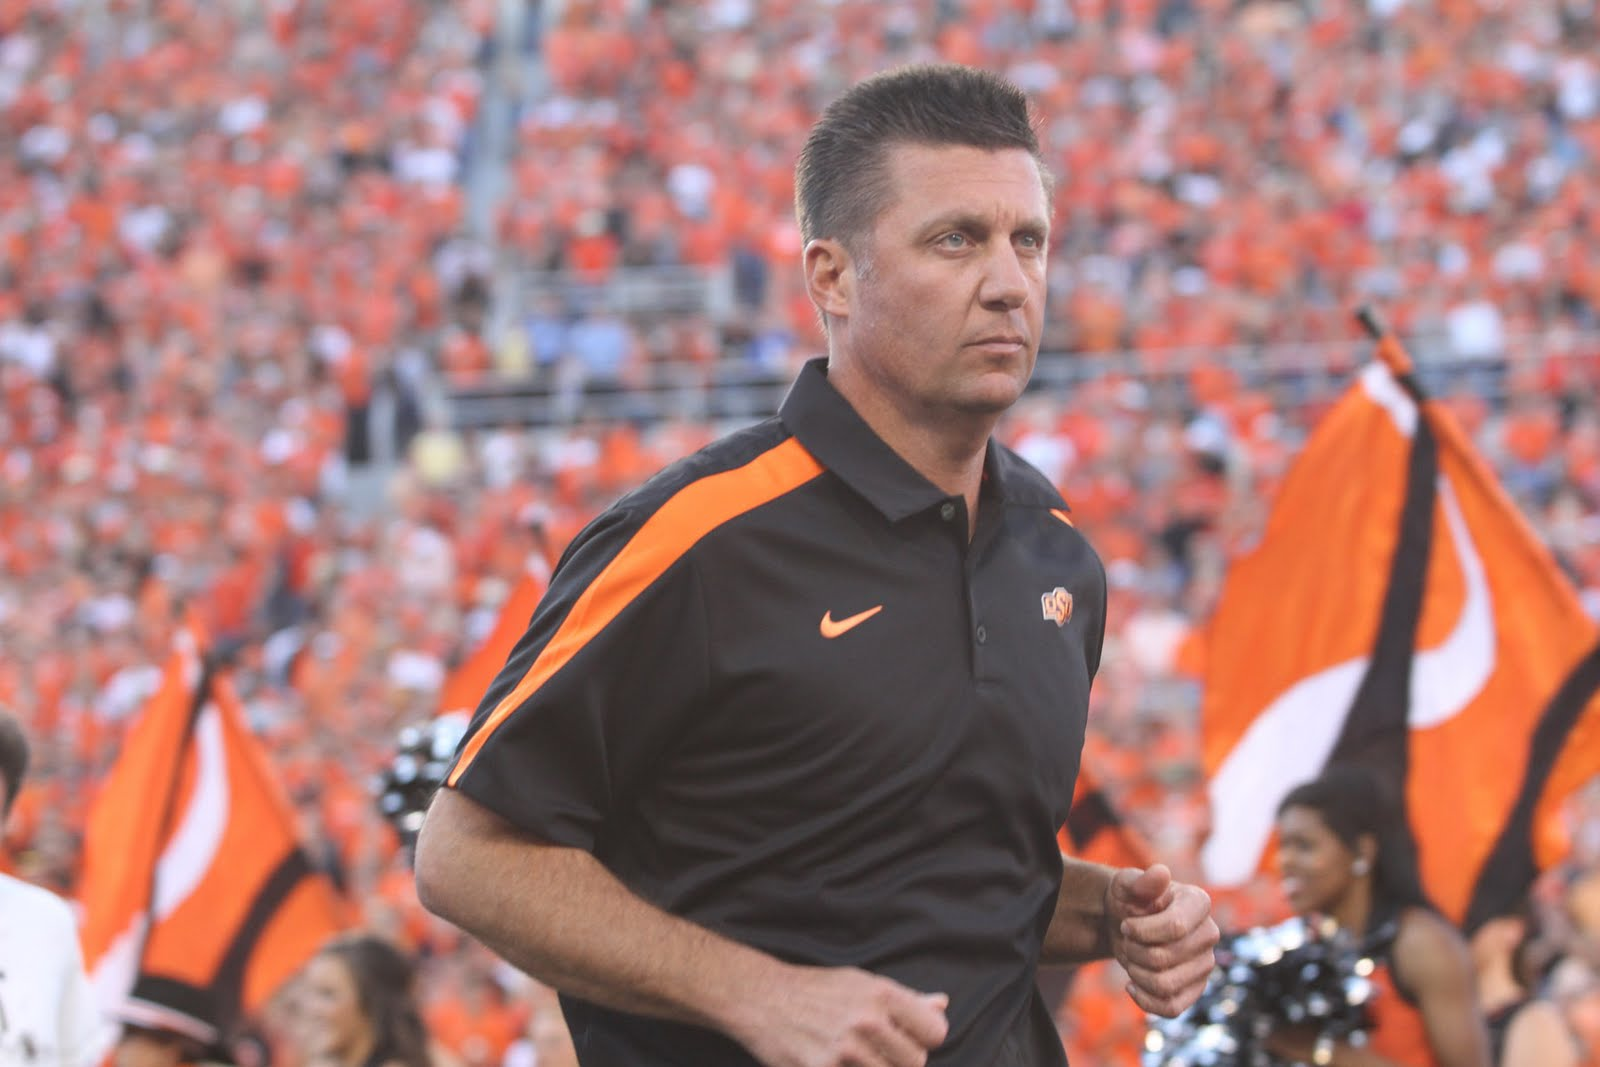 The Cowboy Huddle: Mike Gundy Featured on ESPN.com